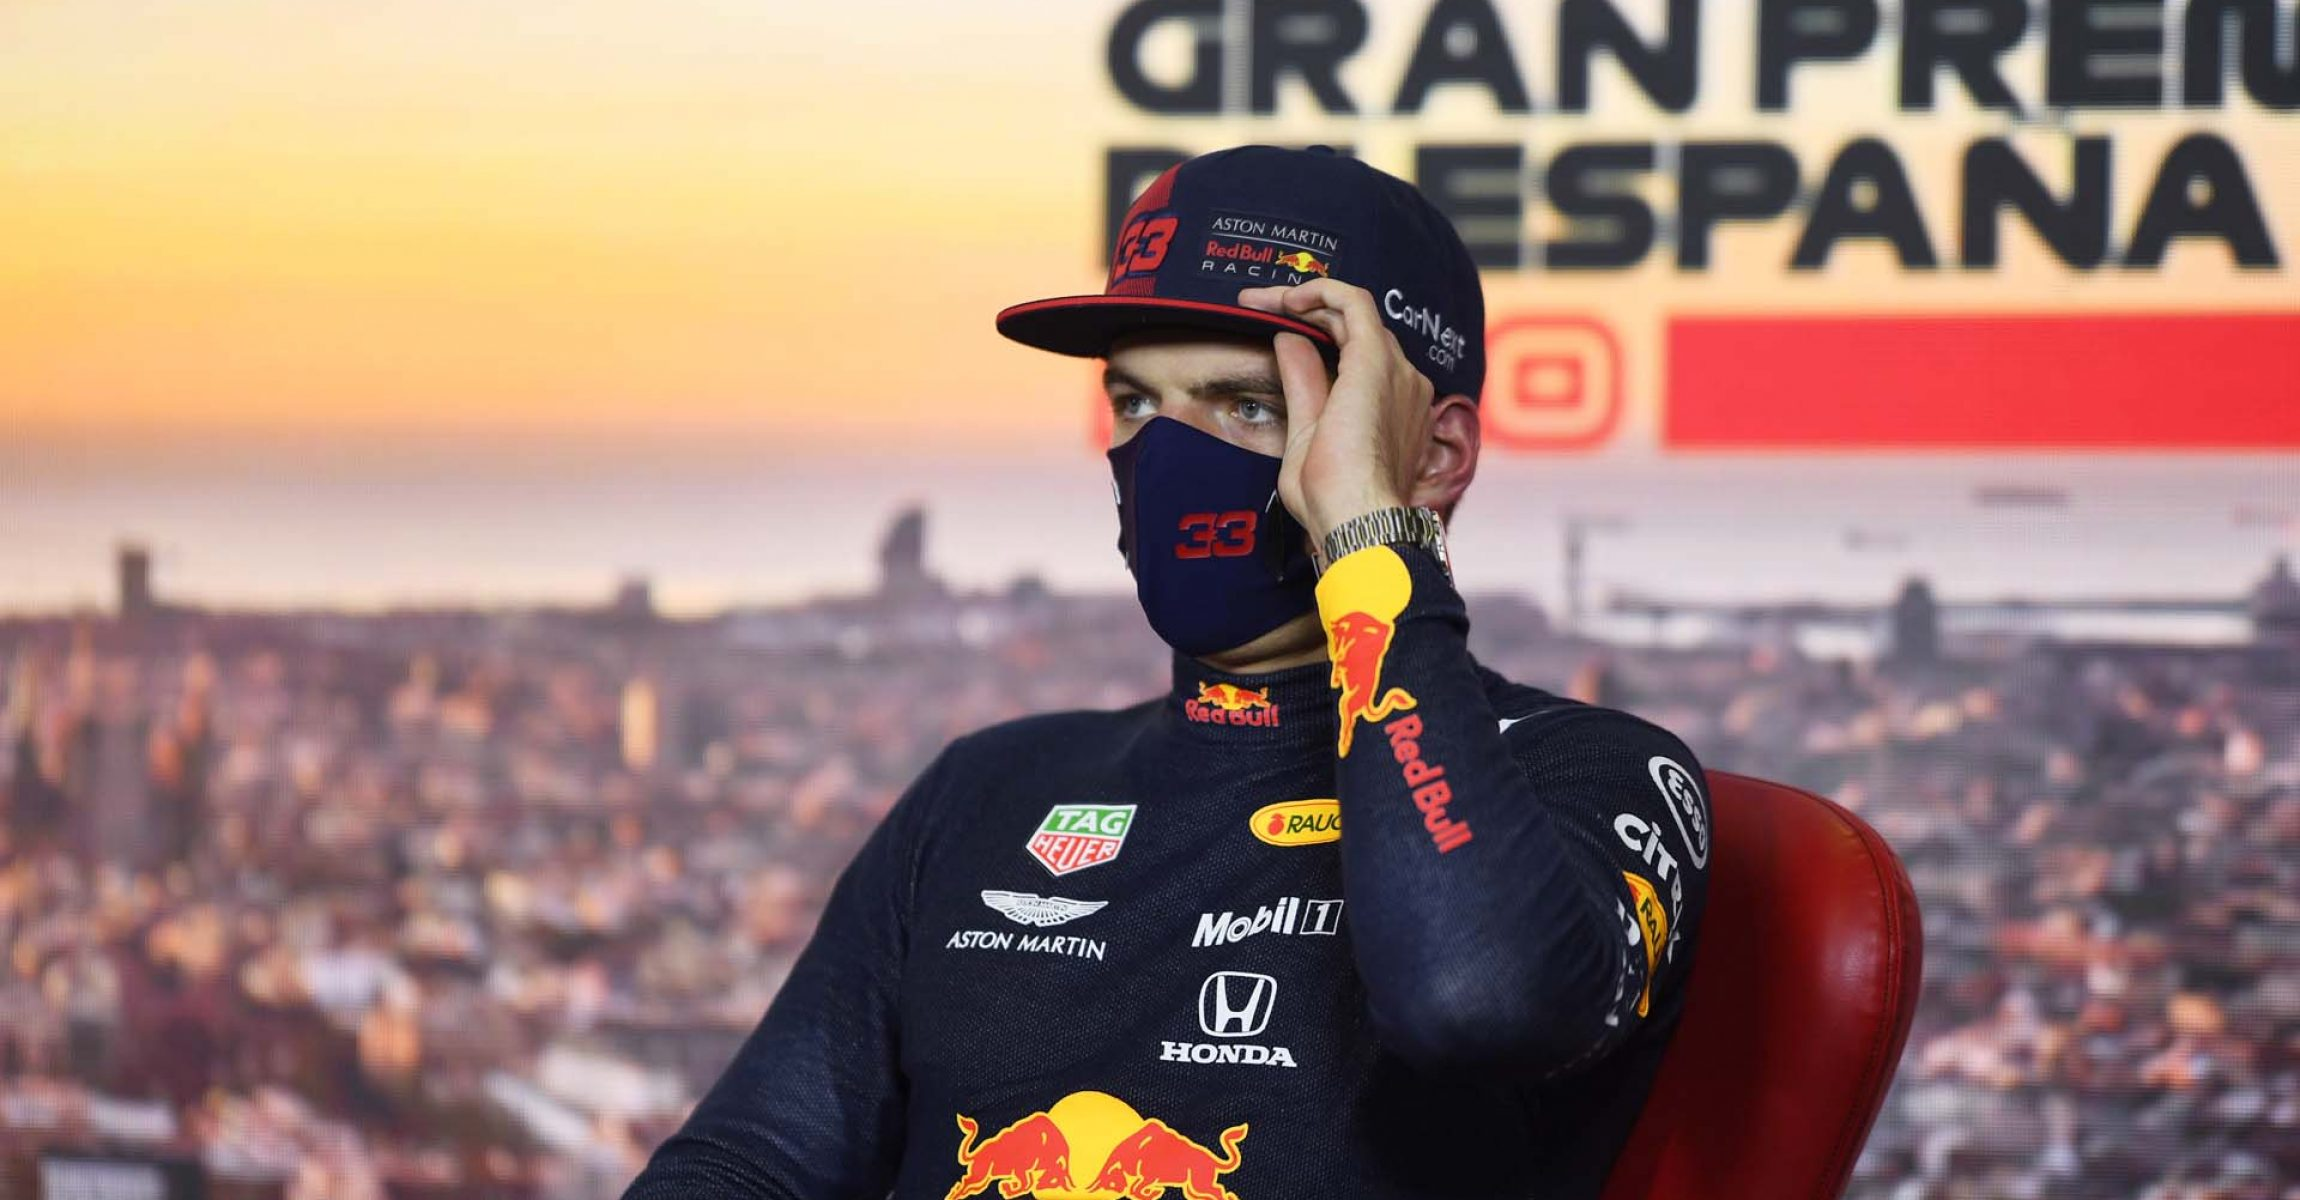 BARCELONA, SPAIN - AUGUST 15: Third placed qualifier Max Verstappen of Netherlands and Red Bull Racing talks in the Drivers Press Conference during qualifying for the F1 Grand Prix of Spain at Circuit de Barcelona-Catalunya on August 15, 2020 in Barcelona, Spain. (Photo by Rudy Carezzevoli/Getty Images)